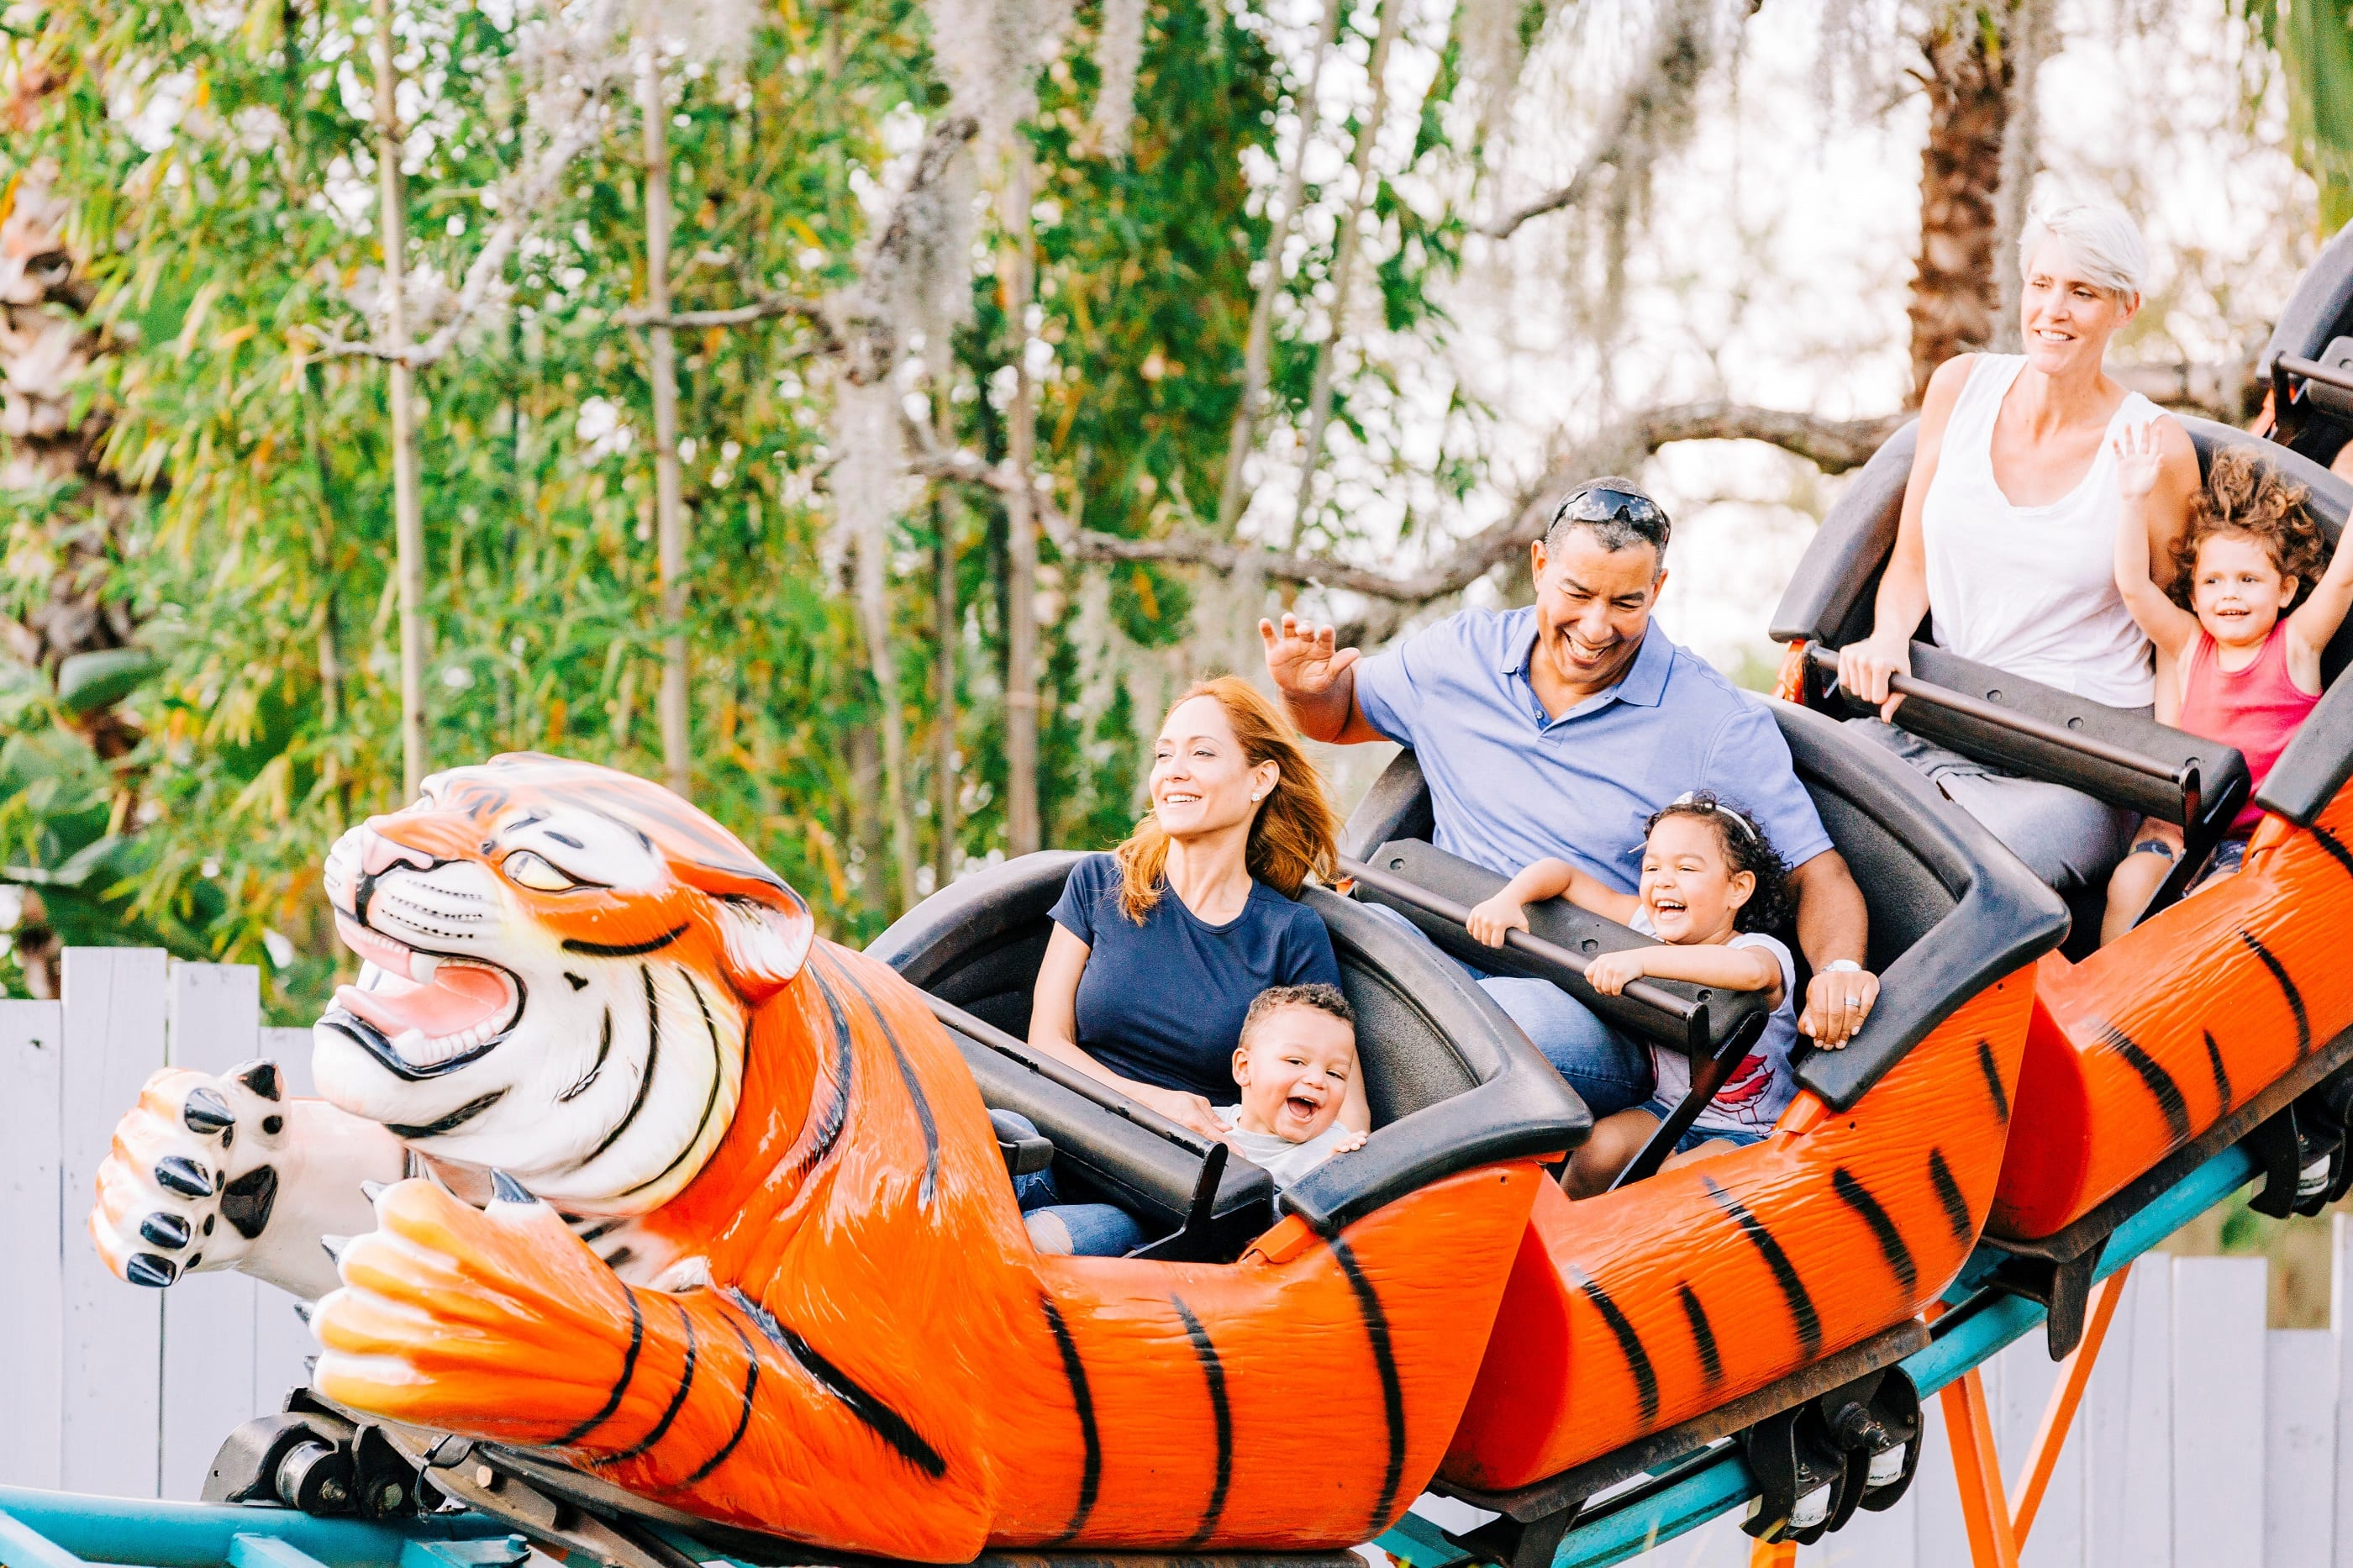 tiger roller coaster at zootampa